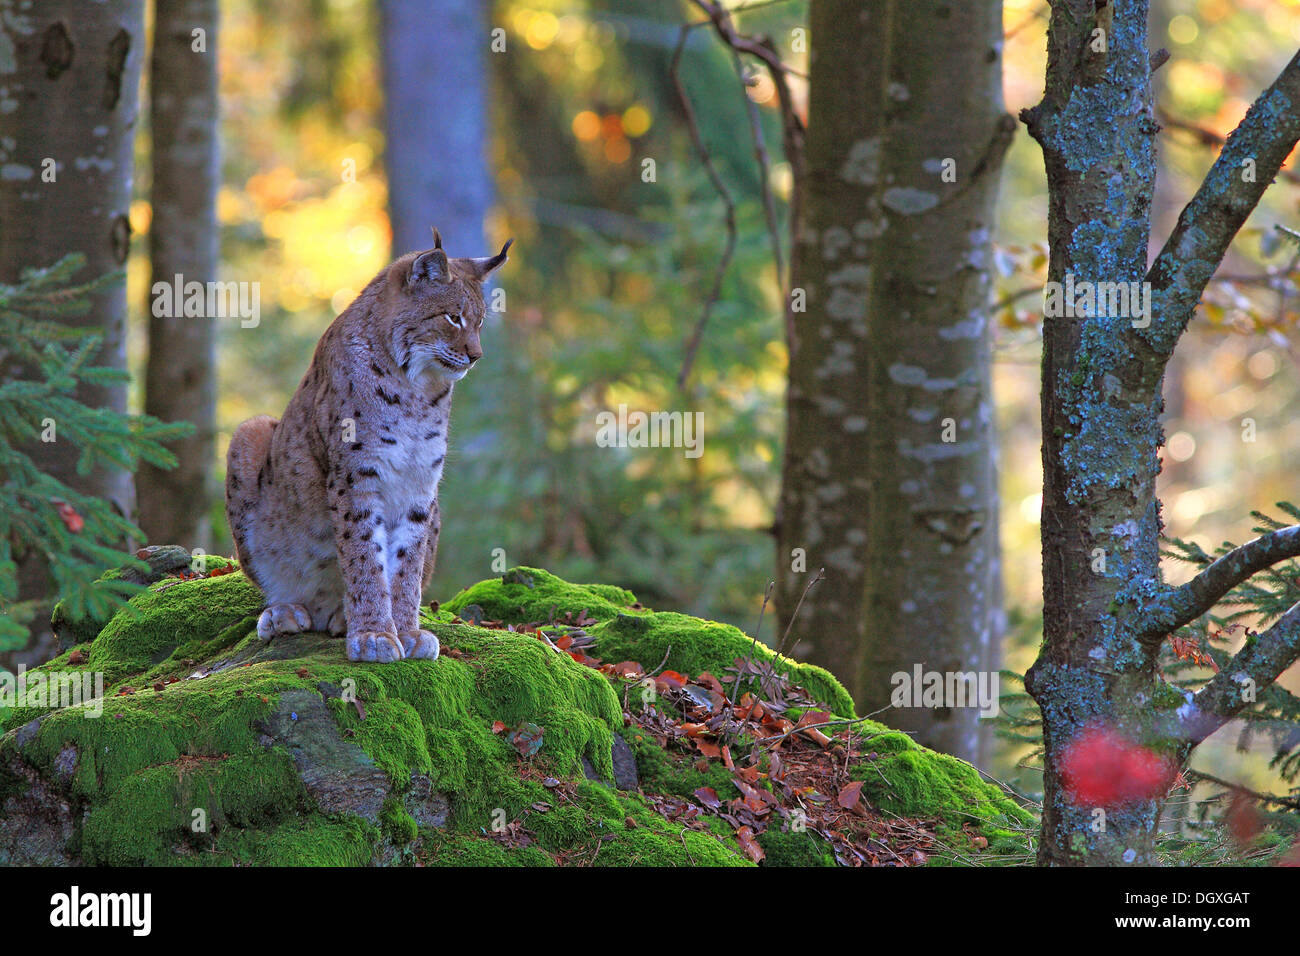 Eurasian Lynx or Northern Lynx (Lynx lynx) seated on a rock, enclosure area, Bavarian Forest National Park, Bavaria - Stock Image